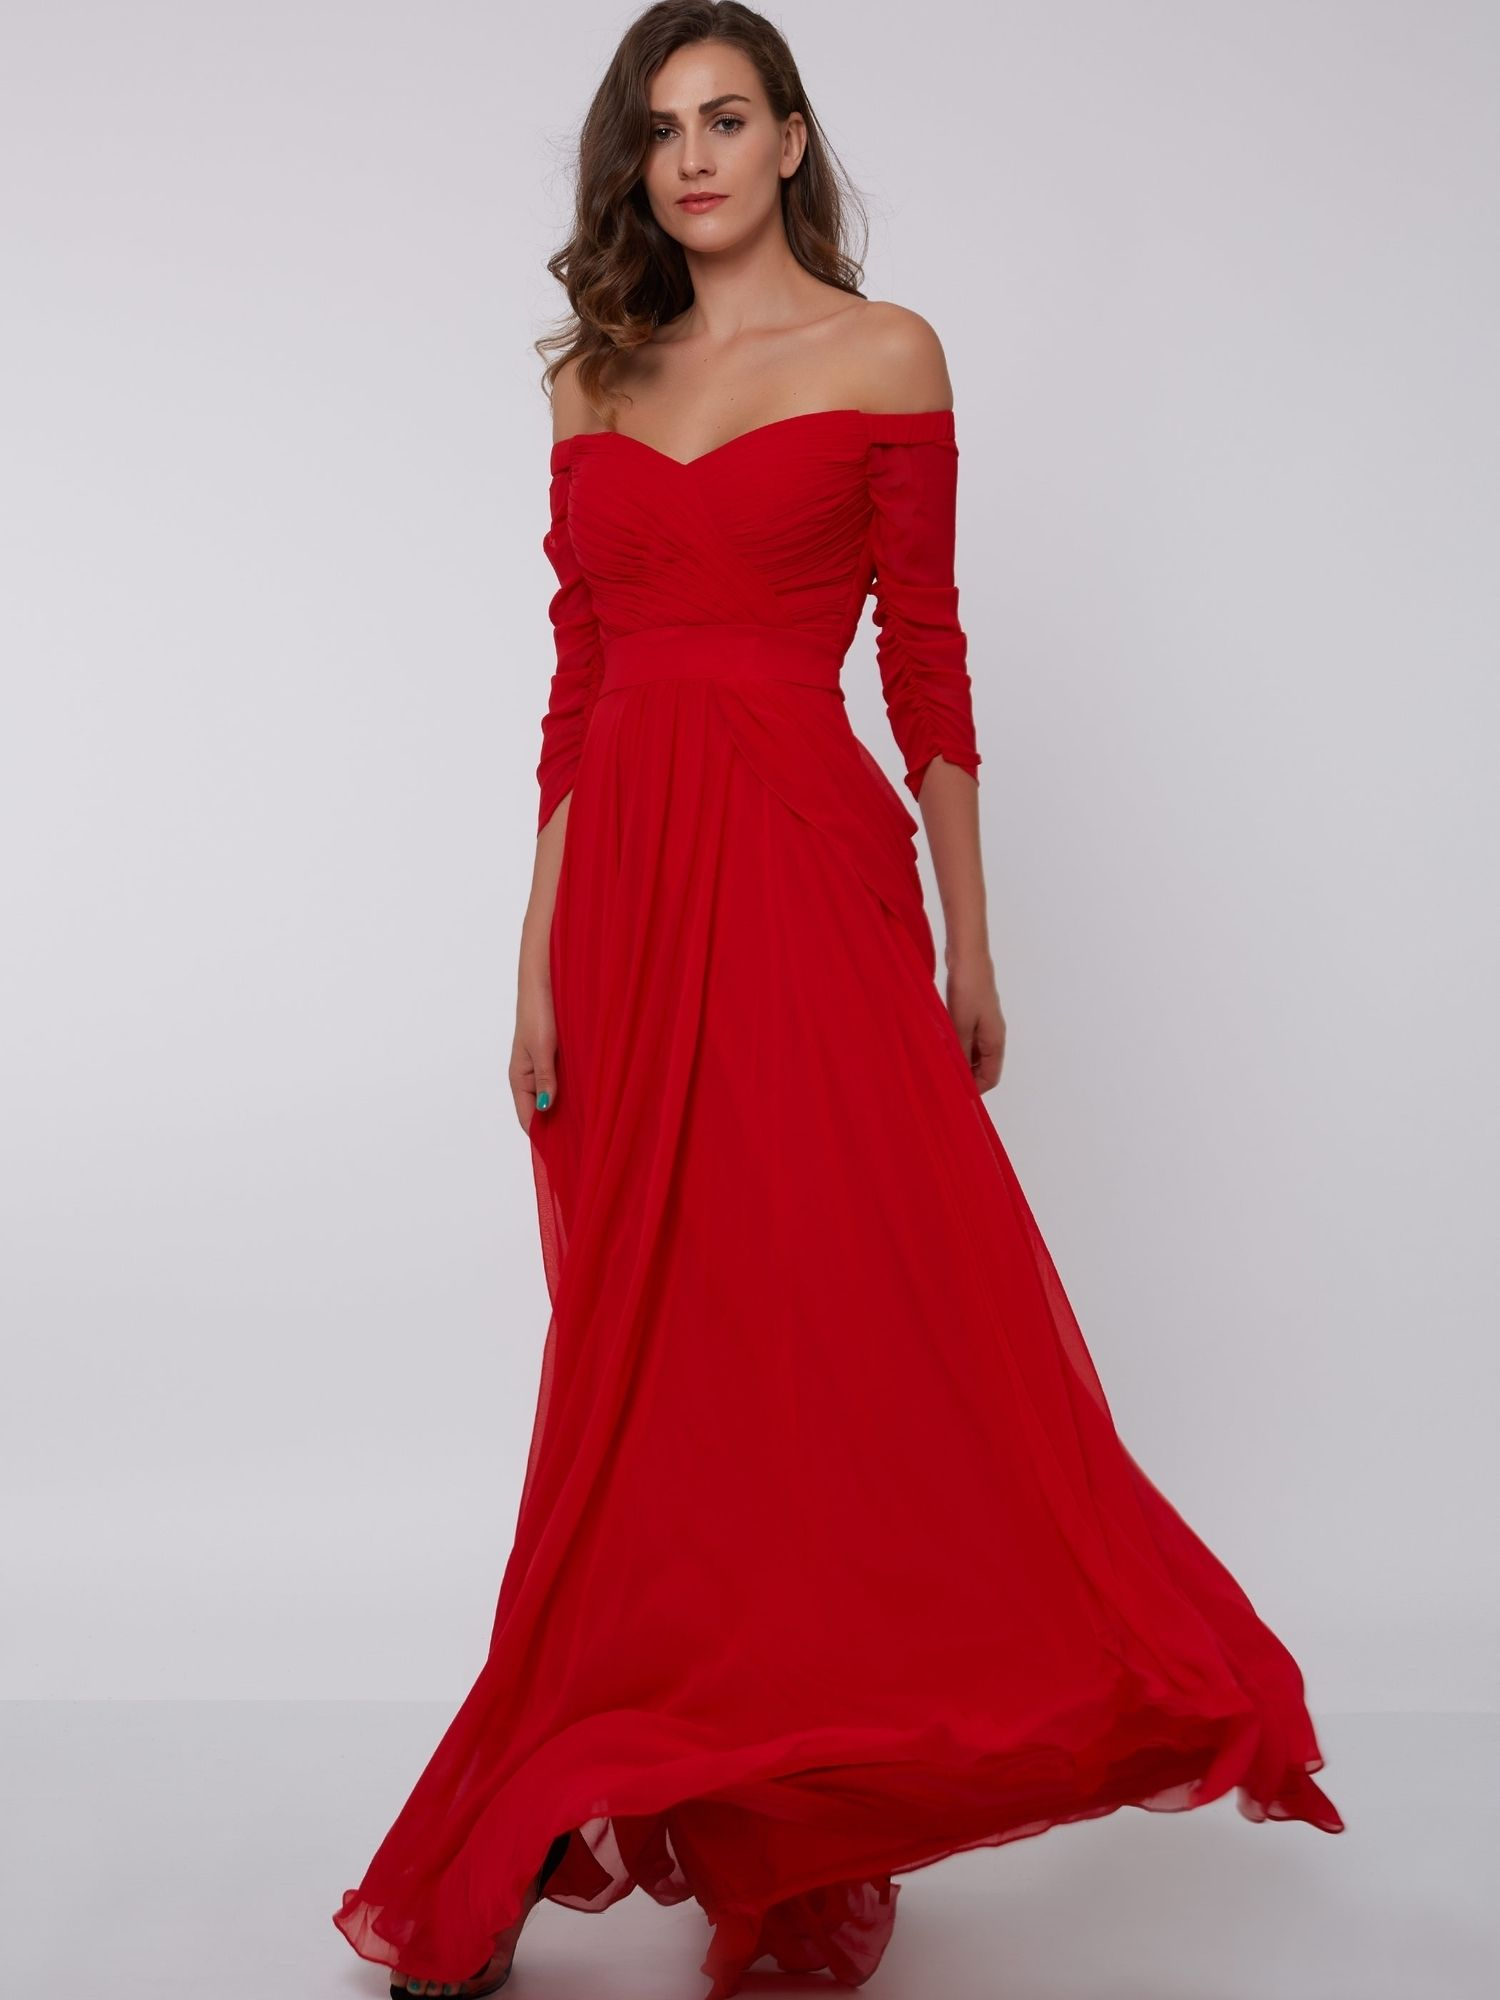 3ac81336dc4e A-Line Off-the-Shoulder 3/4 Length Sleeves Pleats Ruched Evening Dress  Clean:Dry Clean Only; Material:Chiffon; Body Shape:All Sizes; Silhouette:A- Line; ...